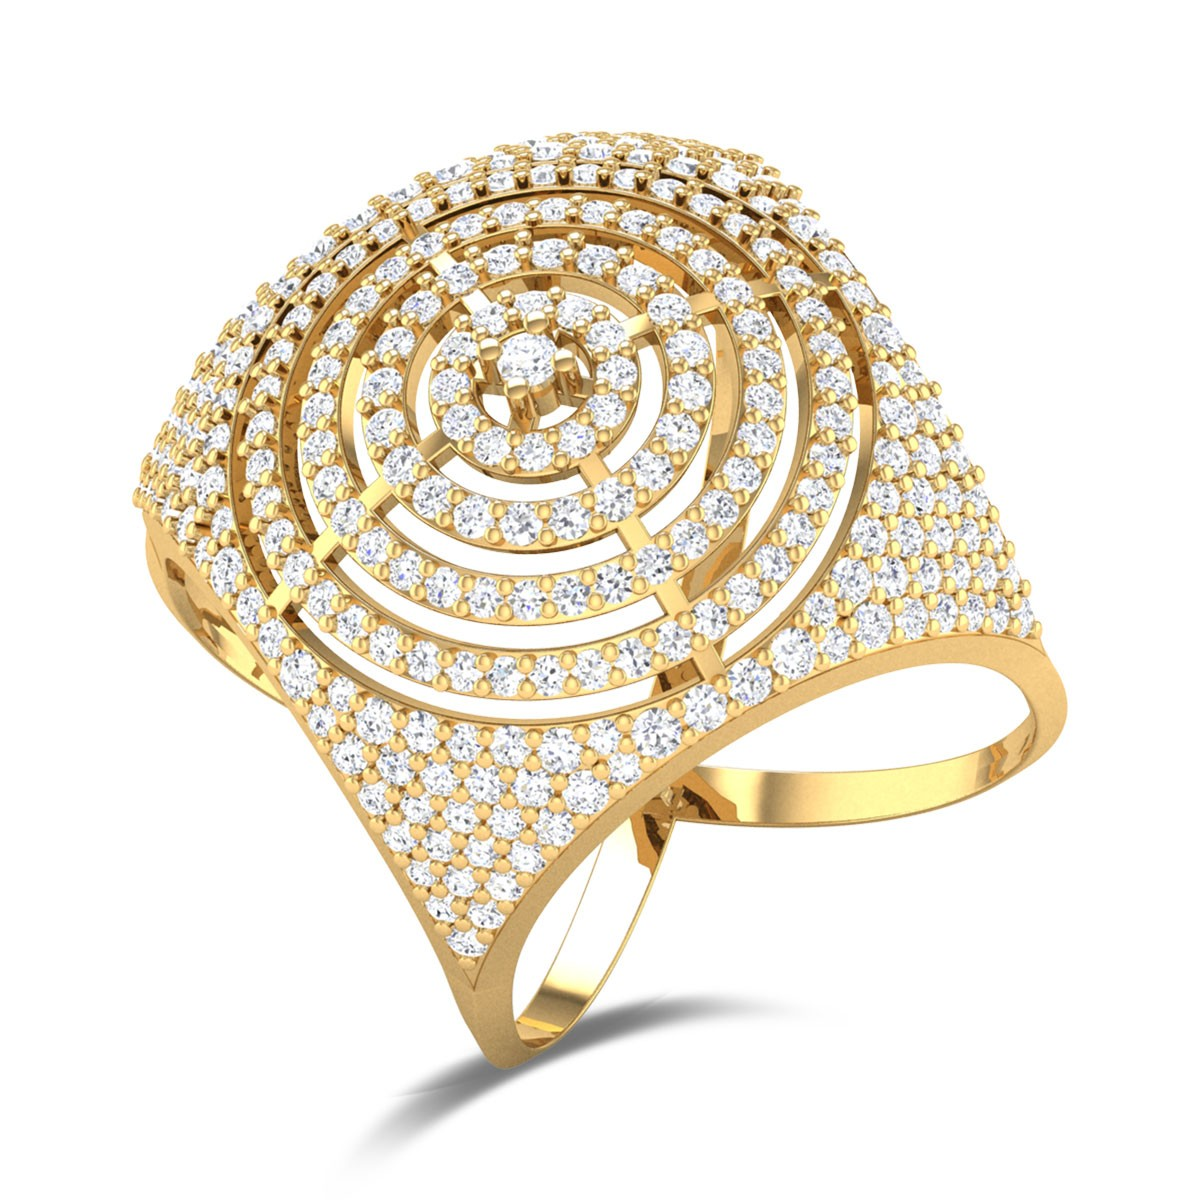 Badar Royal Diamond Ring